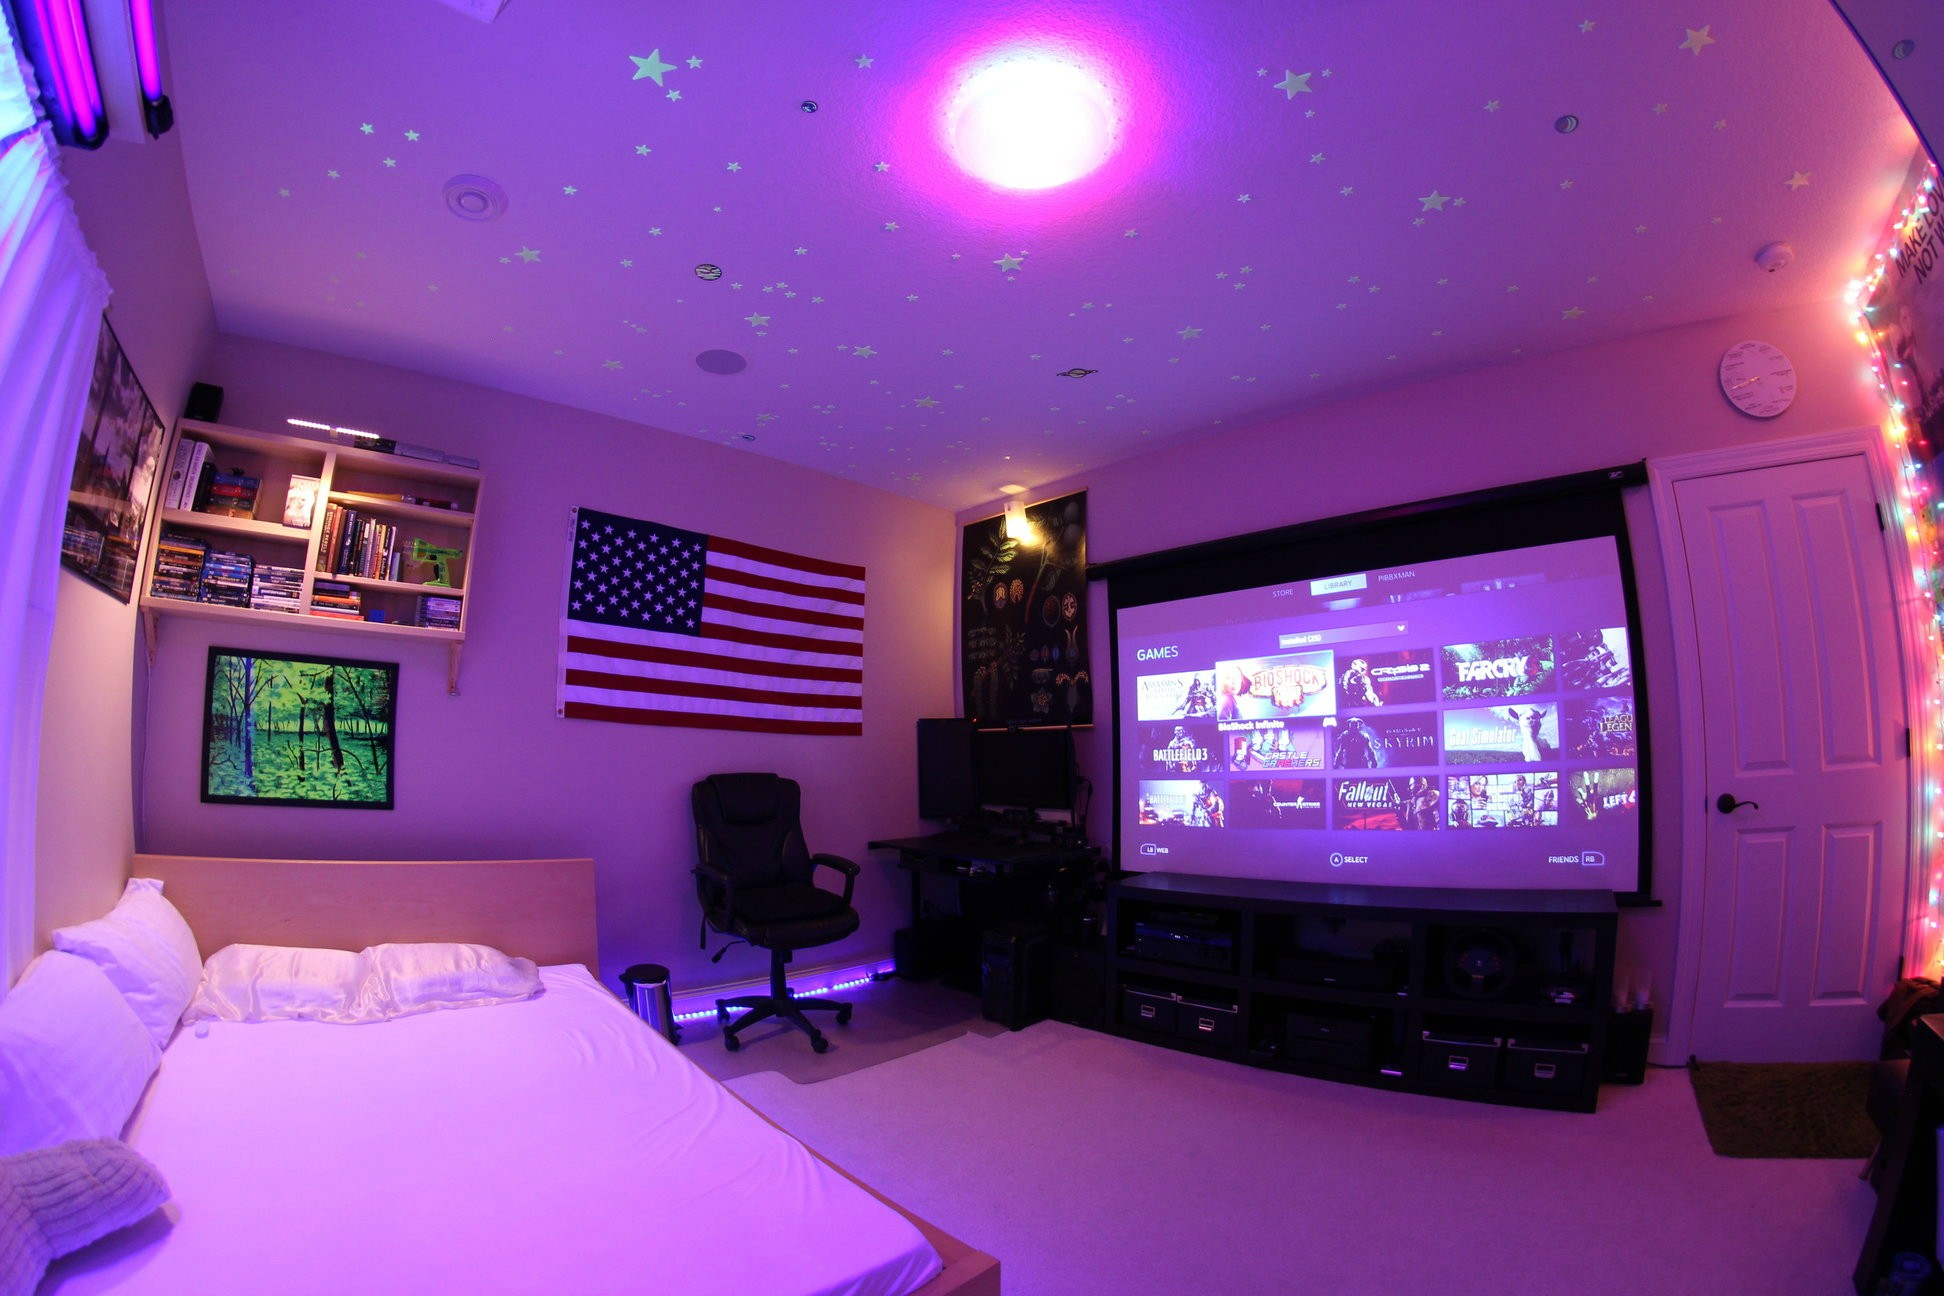 Interior Bedroom Game Ideas 47 epic video game room decoration ideas for 2018 5 making a small space an immersive experience